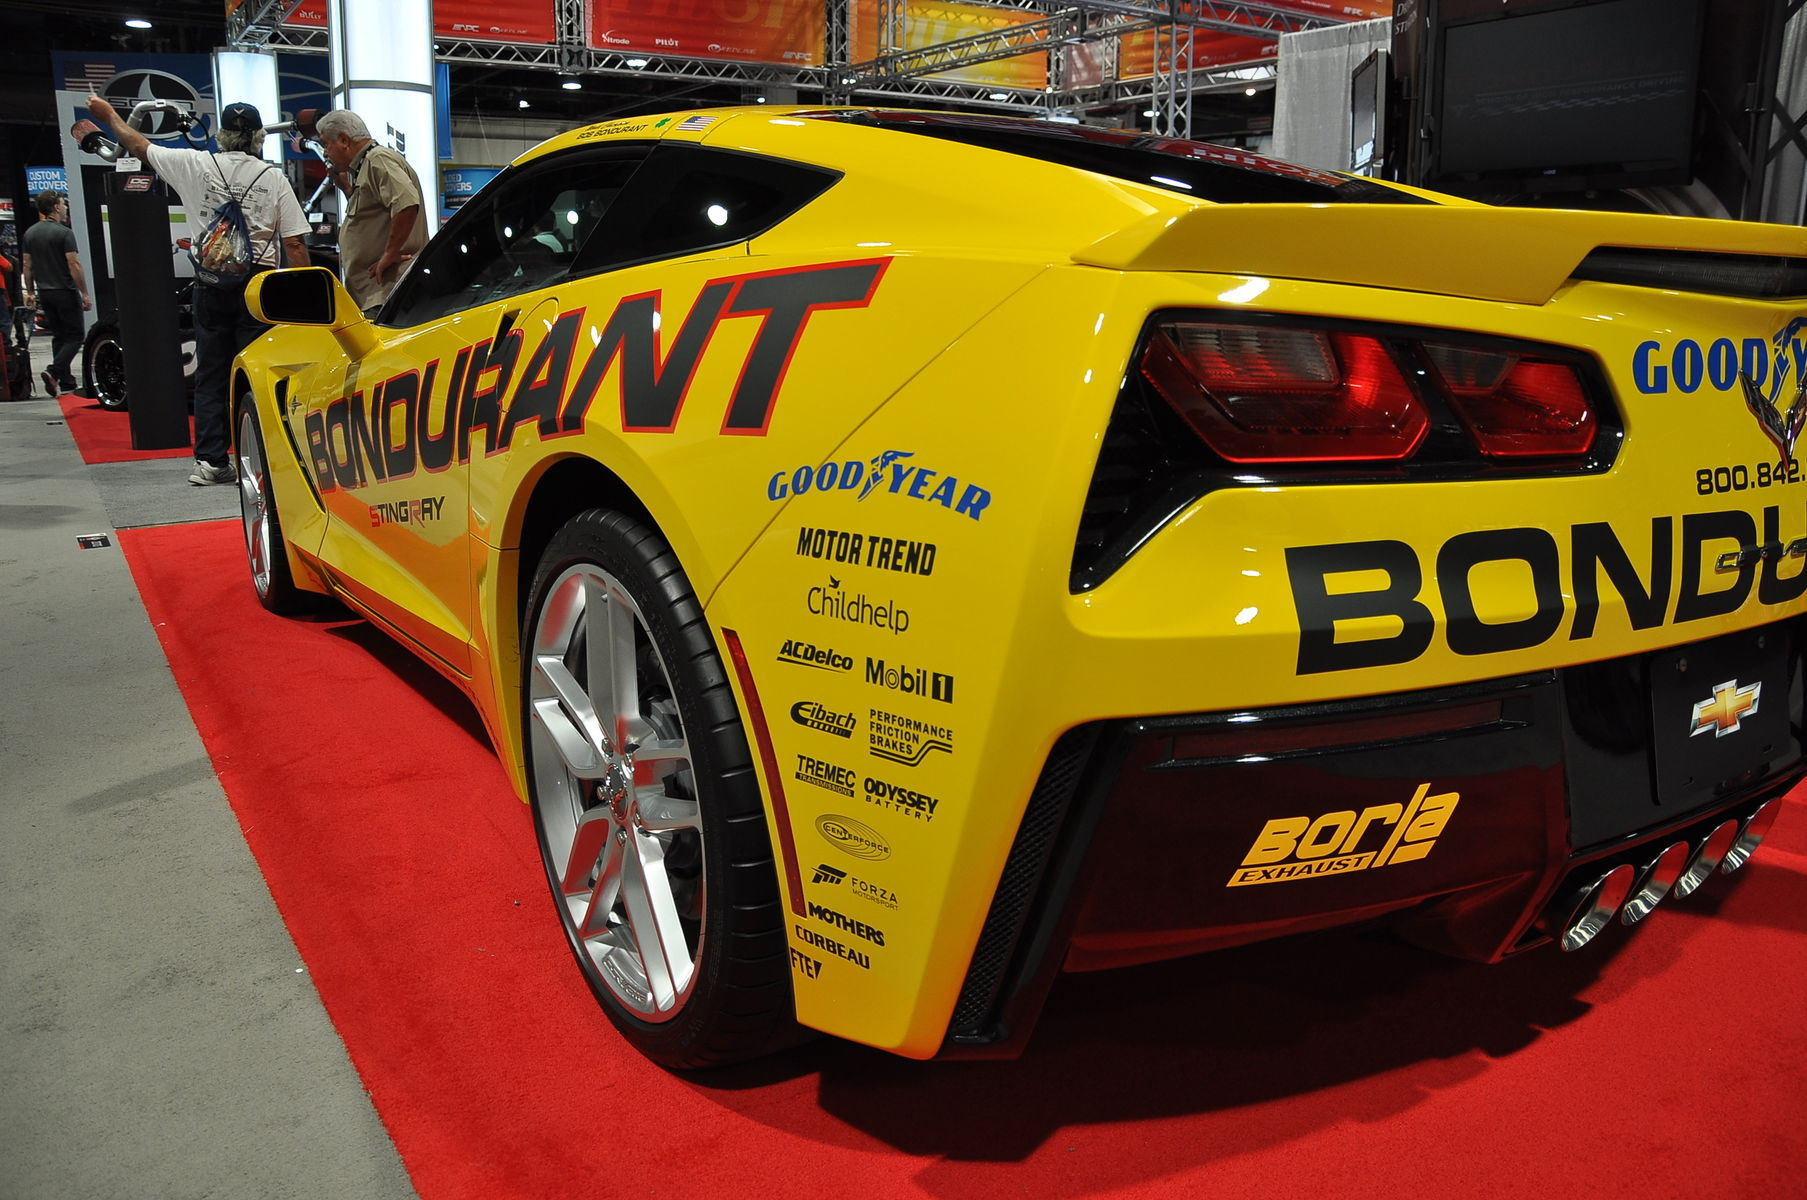 2014 Chevrolet Corvette Stingray | '14 C7 Corvette Stingray in Bondurant booth @ SEMA '13